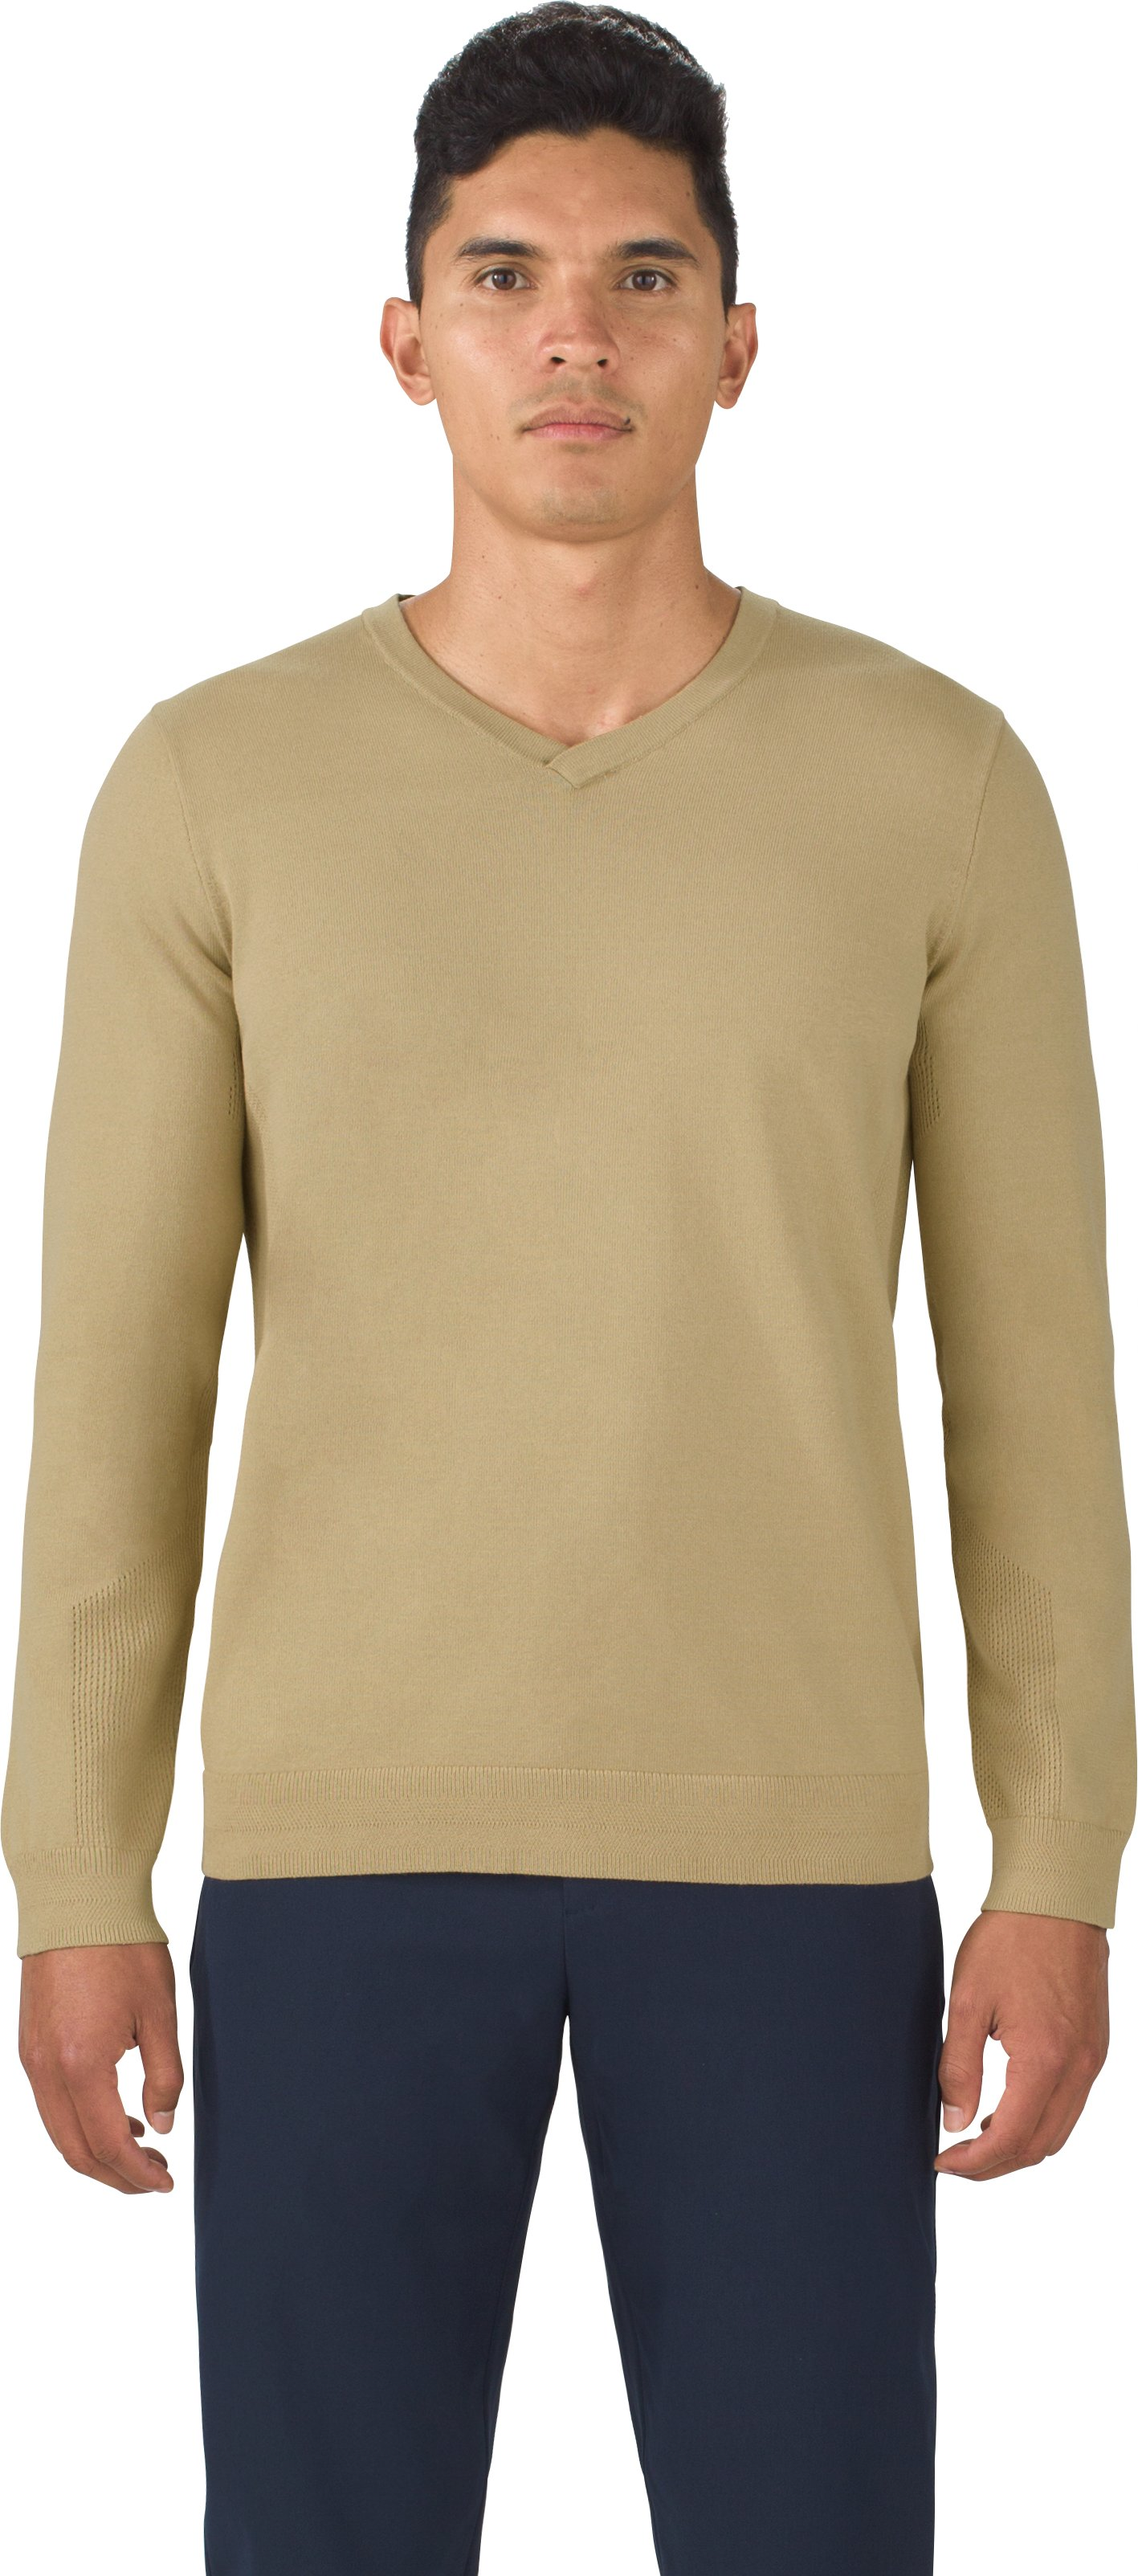 Men's UAS Engineered Knit Sweater, SAND, undefined